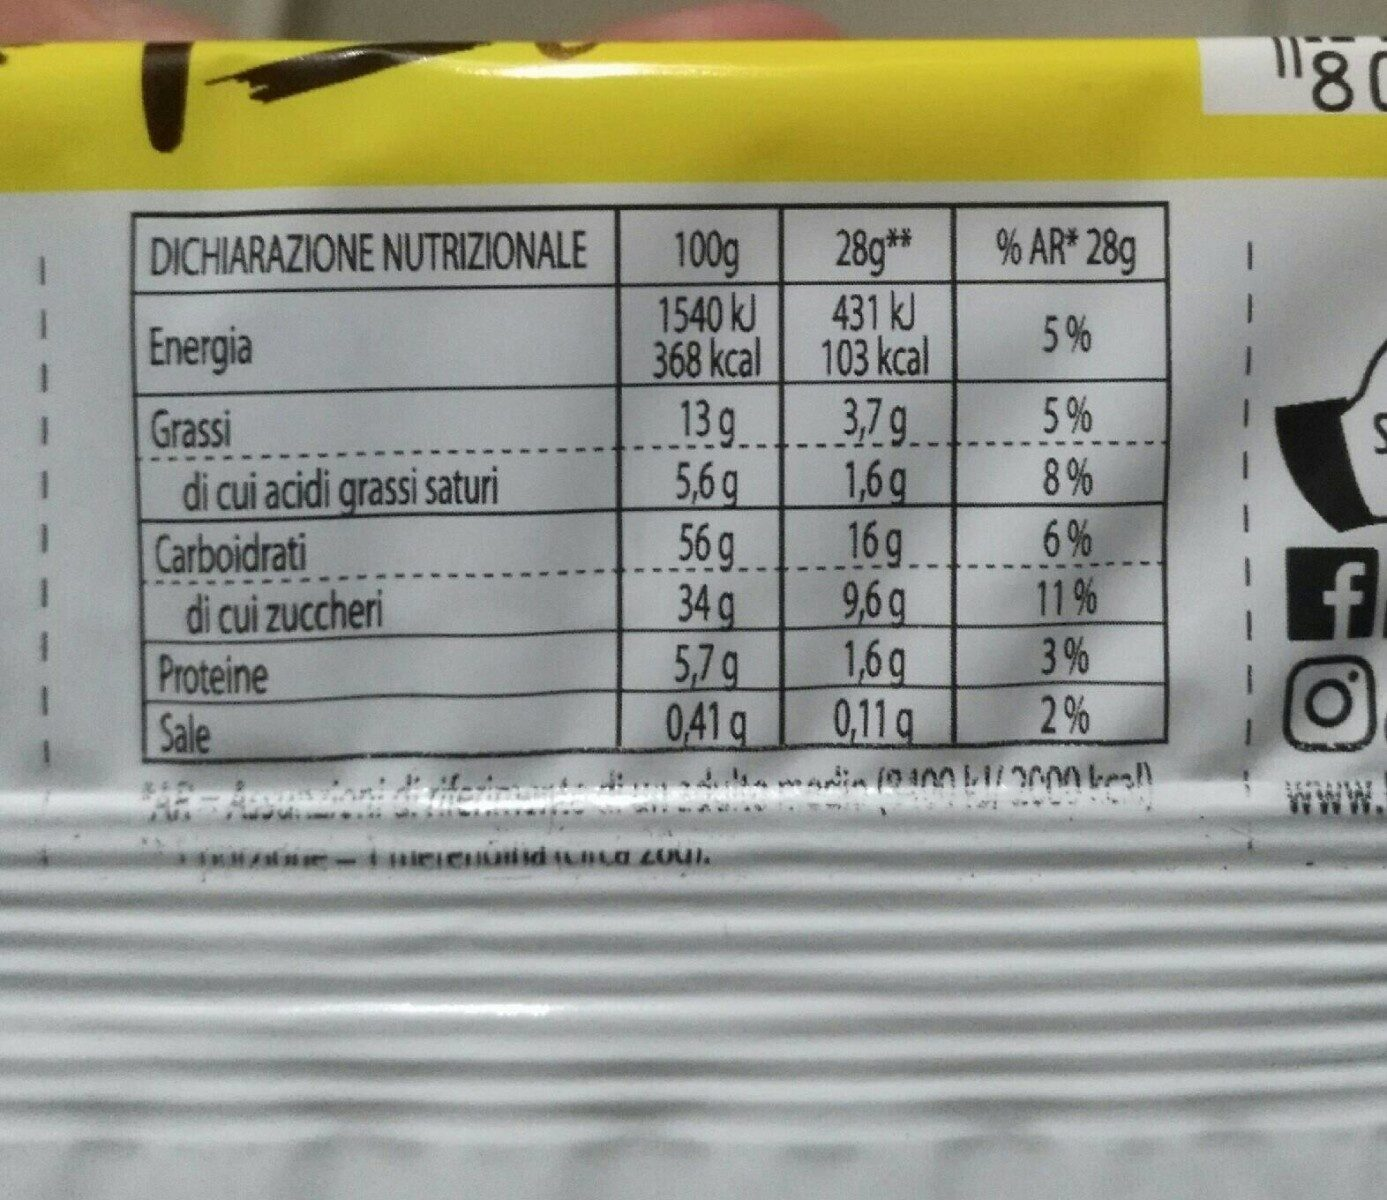 Trancetto Cacao - Nutrition facts - fr